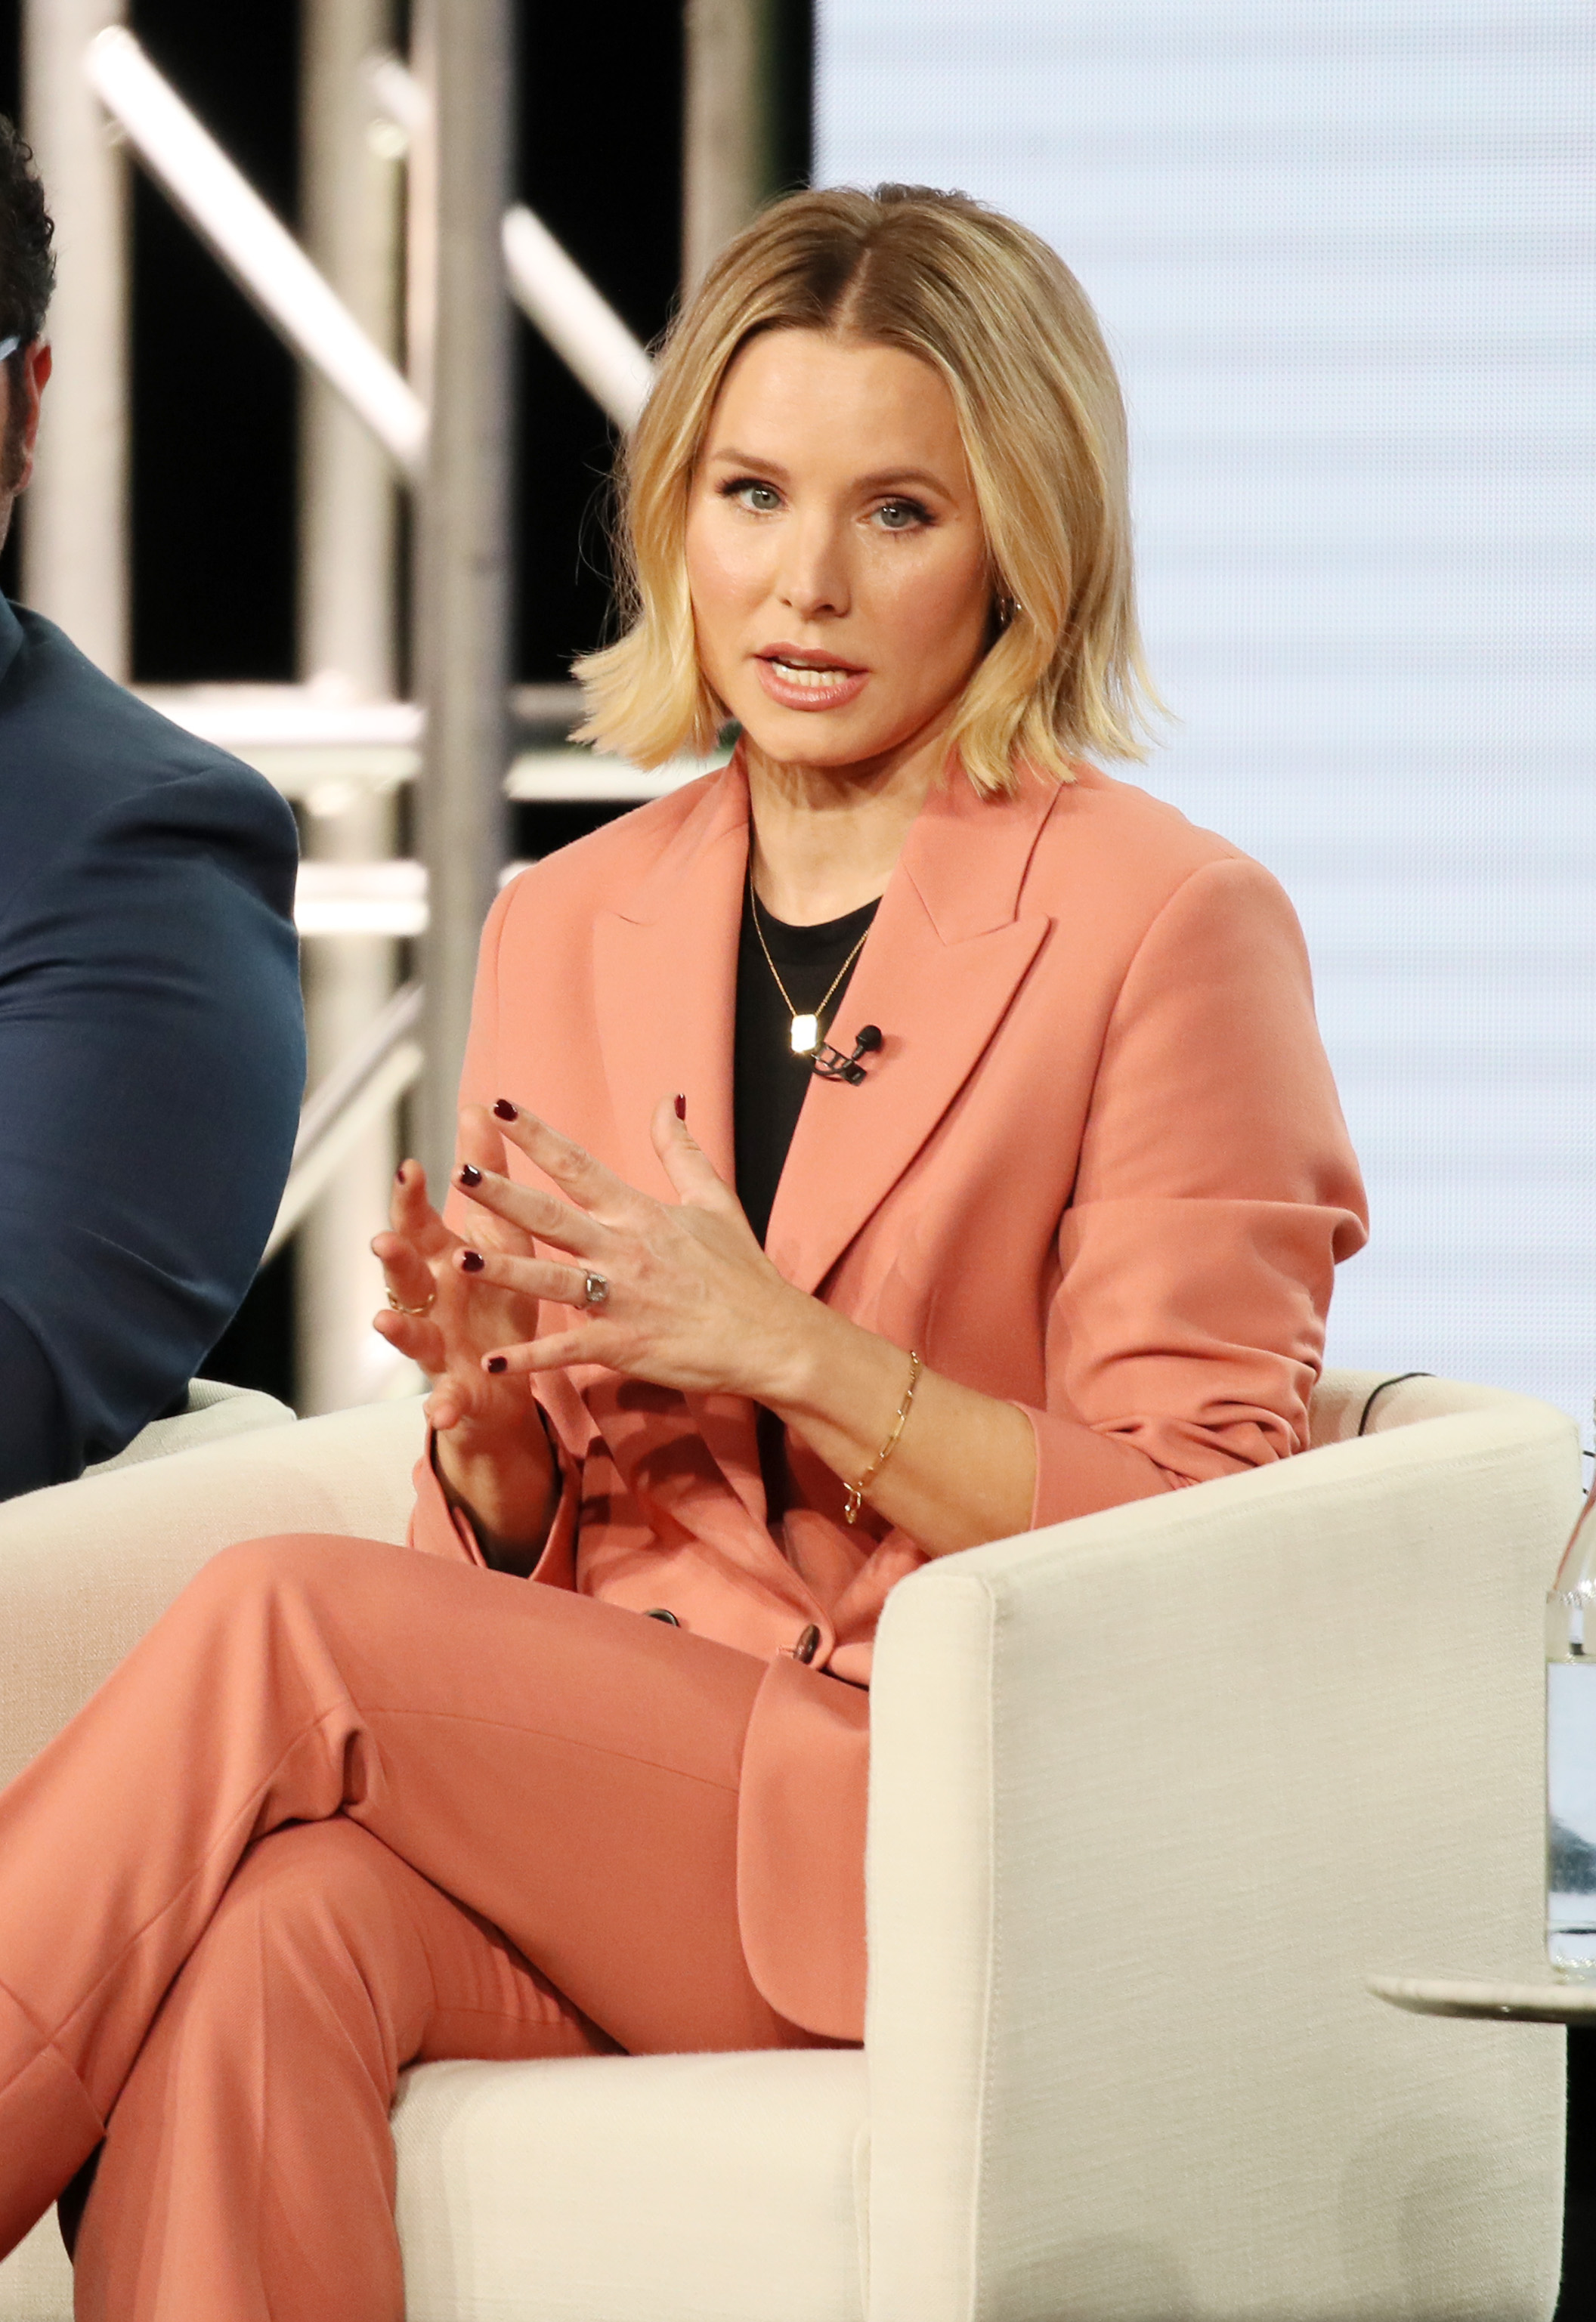 Kristen Bell Explains Why Her 5-Year-Old Daughter Is Still in Diapers